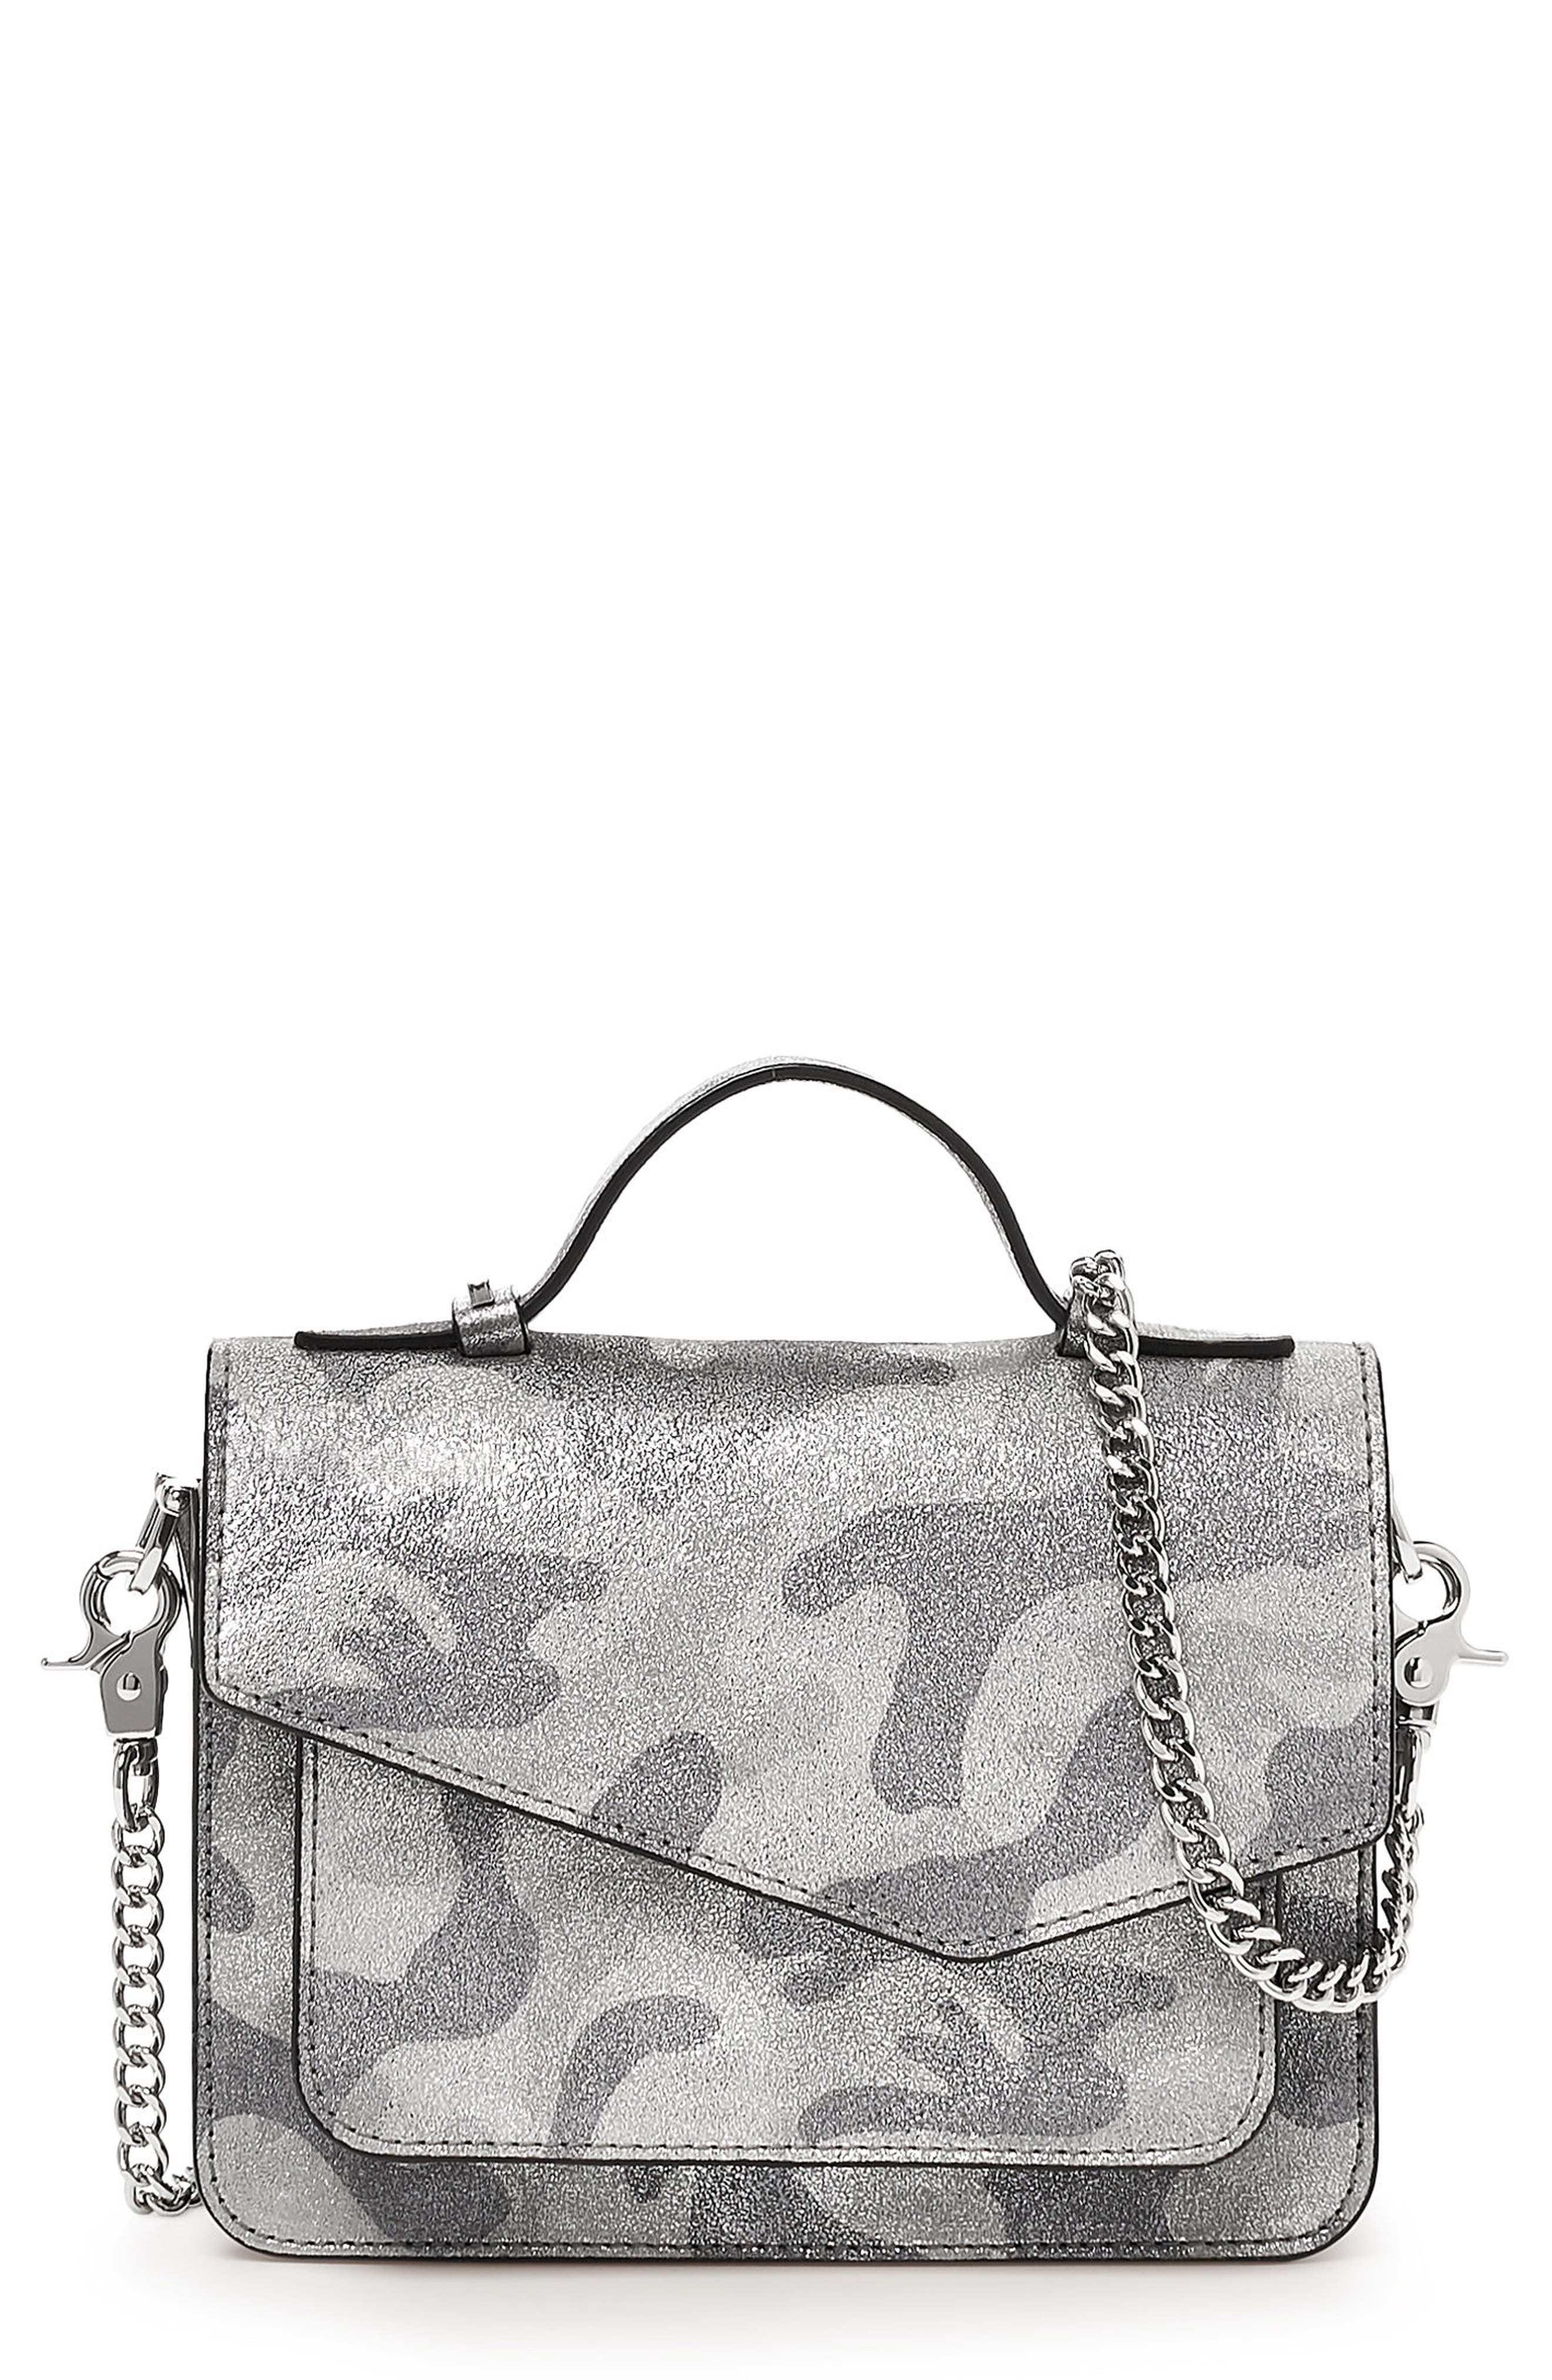 MINI COBBLE HILL CALFSKIN LEATHER CROSSBODY BAG - GREY